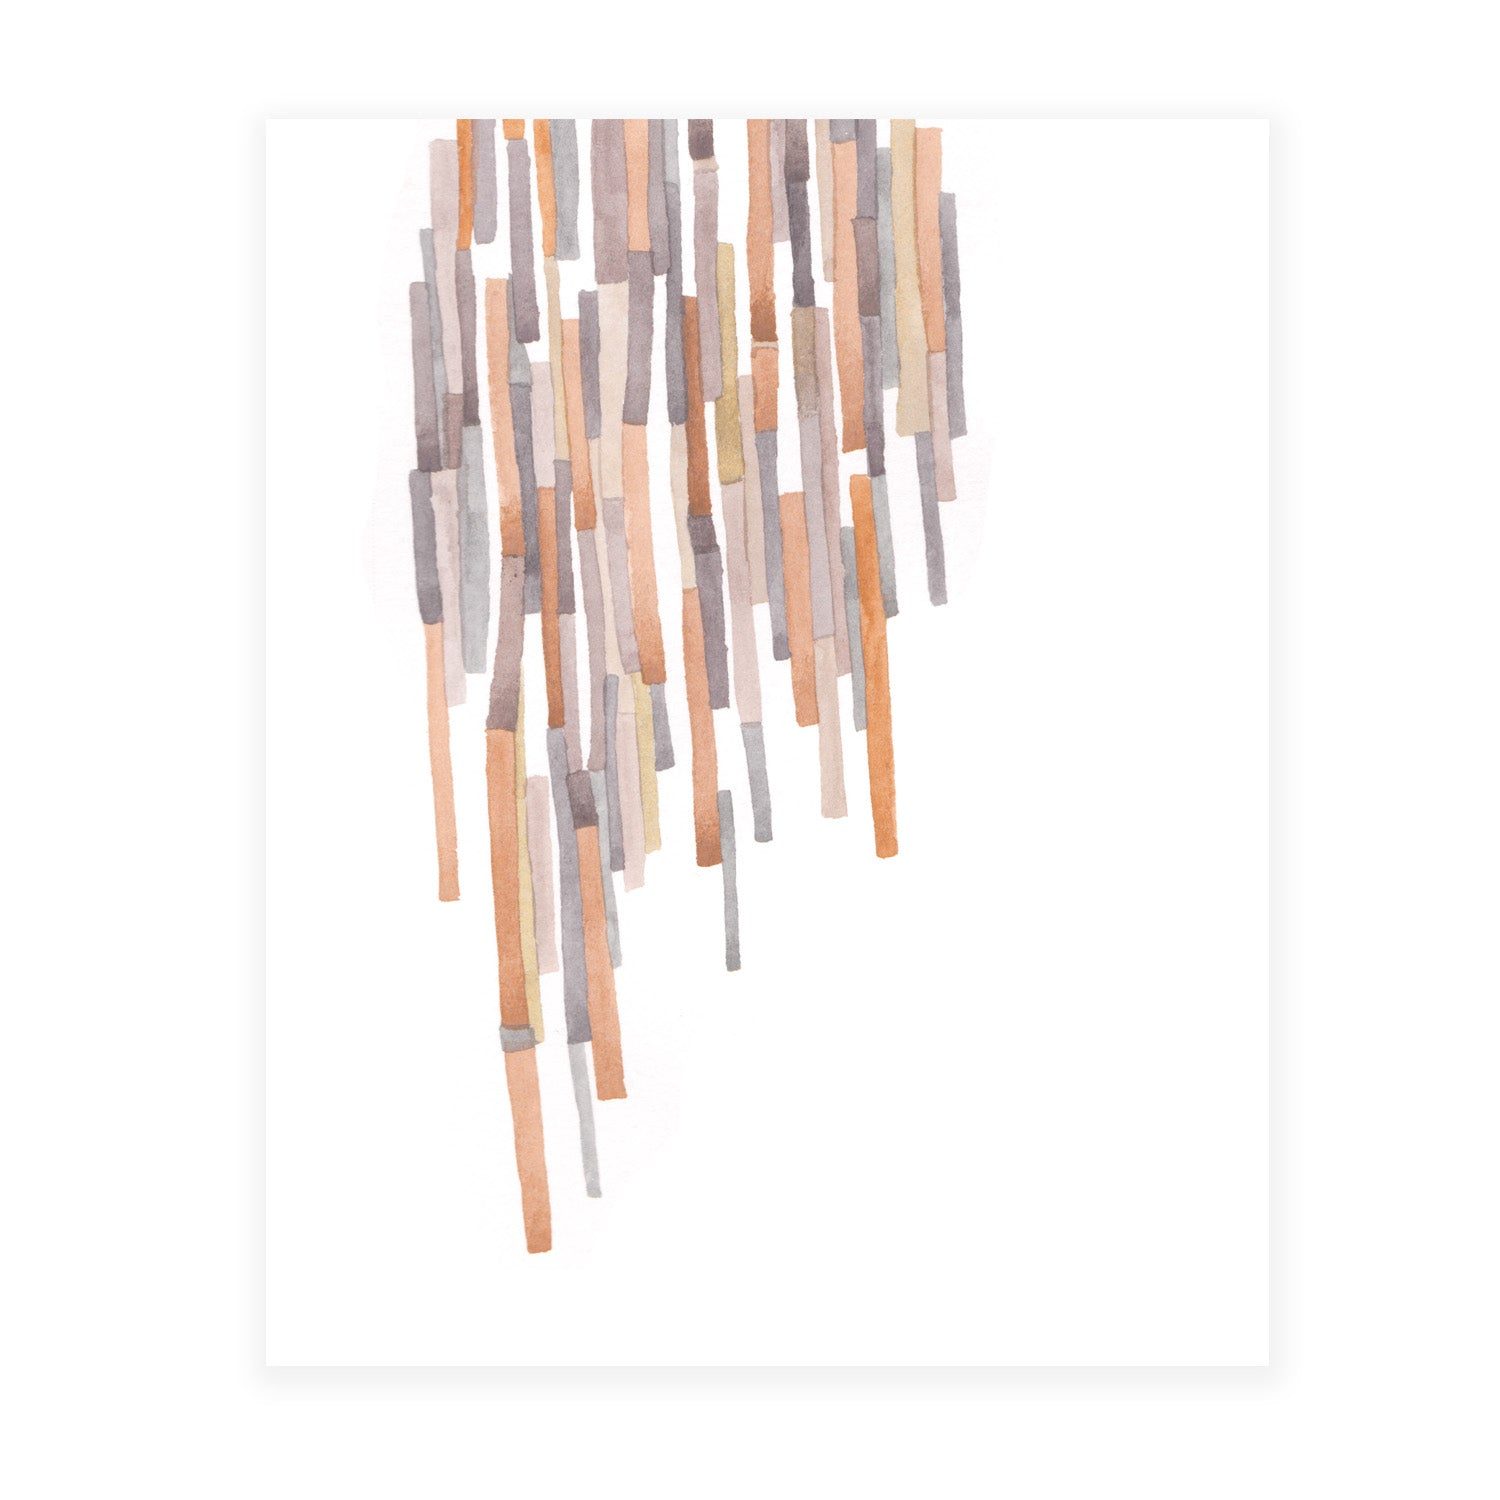 Matchsticks 8x10 Art Print